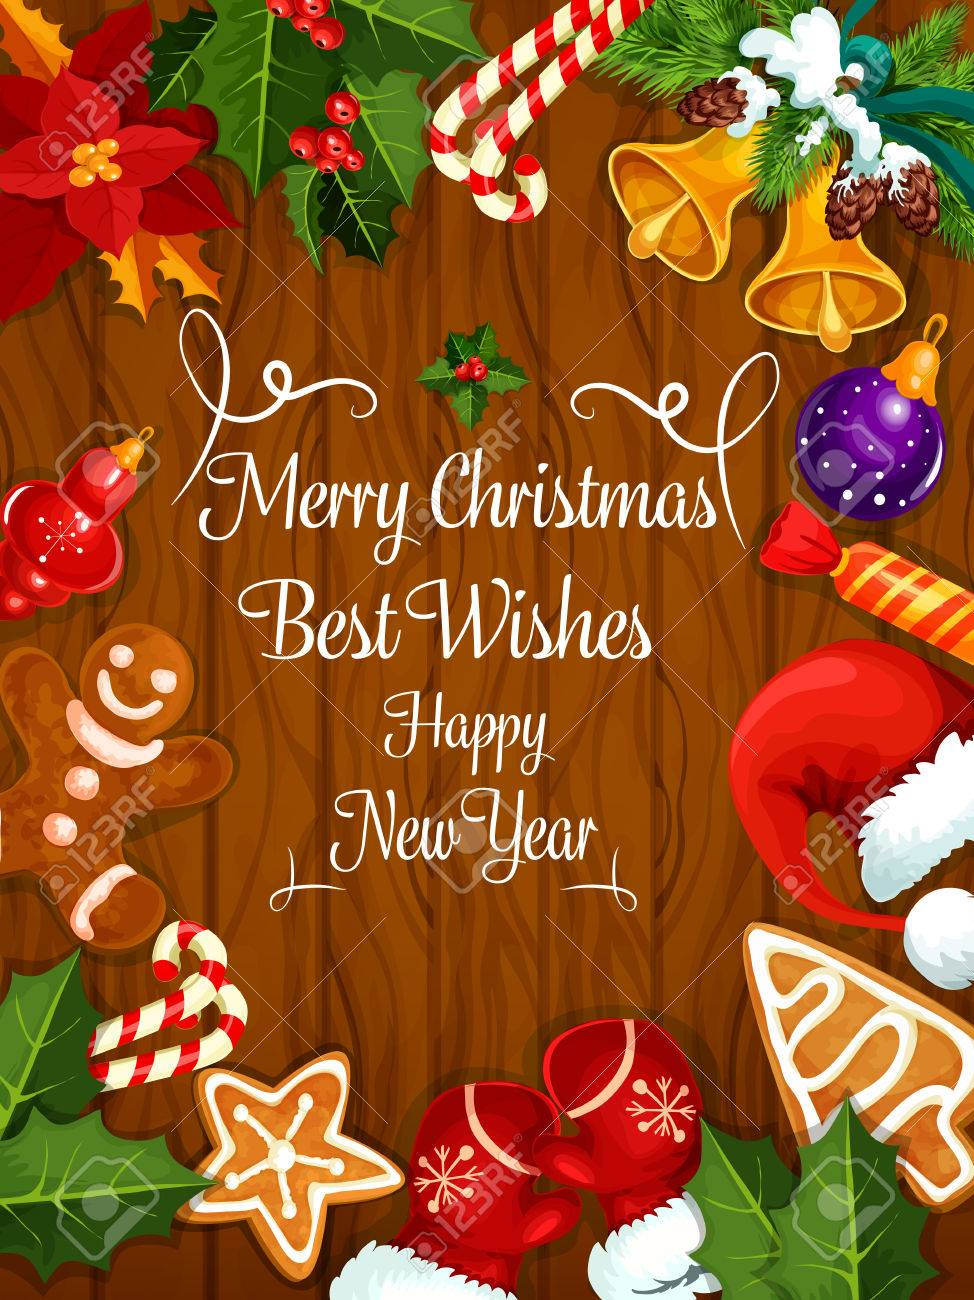 Merry Christmas Greeting Card, New Year Best Wishes Poster With ...